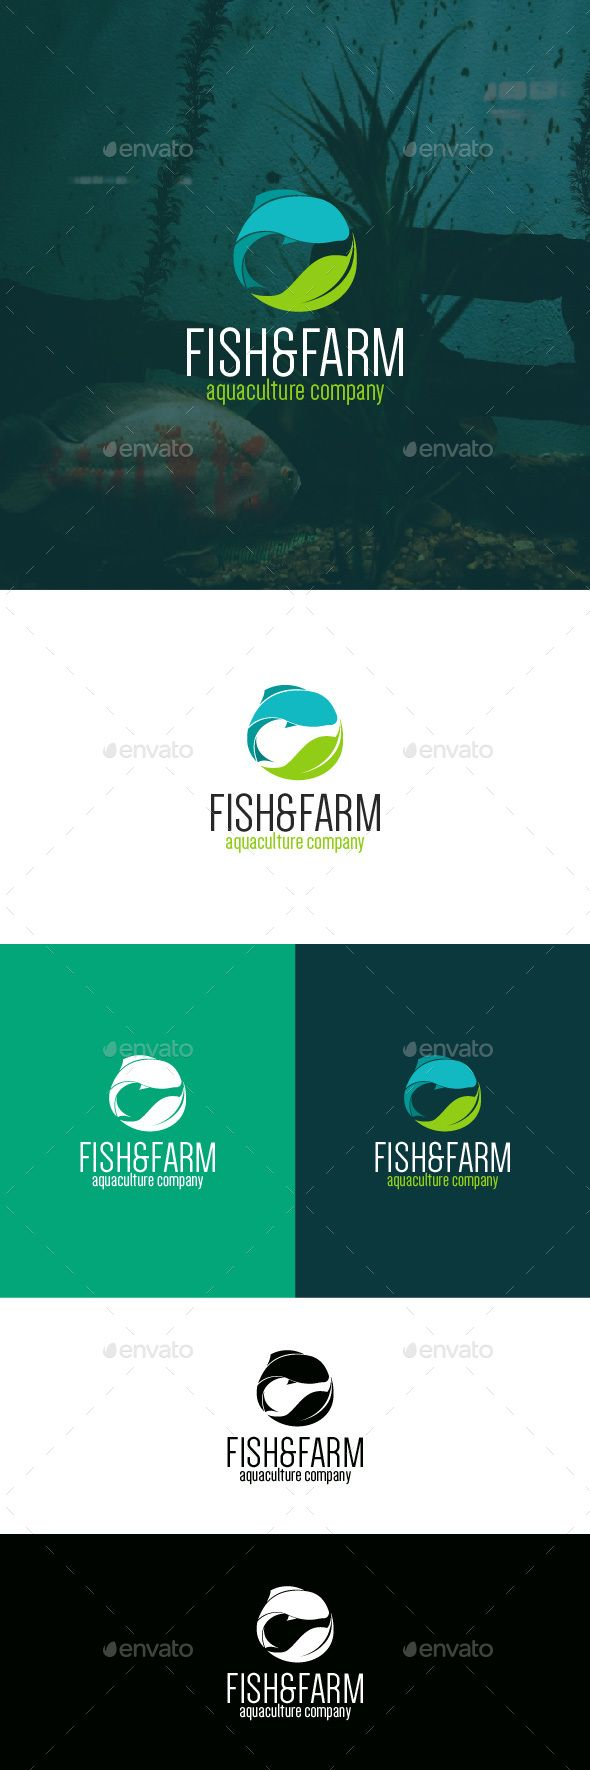 26 best fish restaurant logo images on Pinterest | Seafood, Fish ...